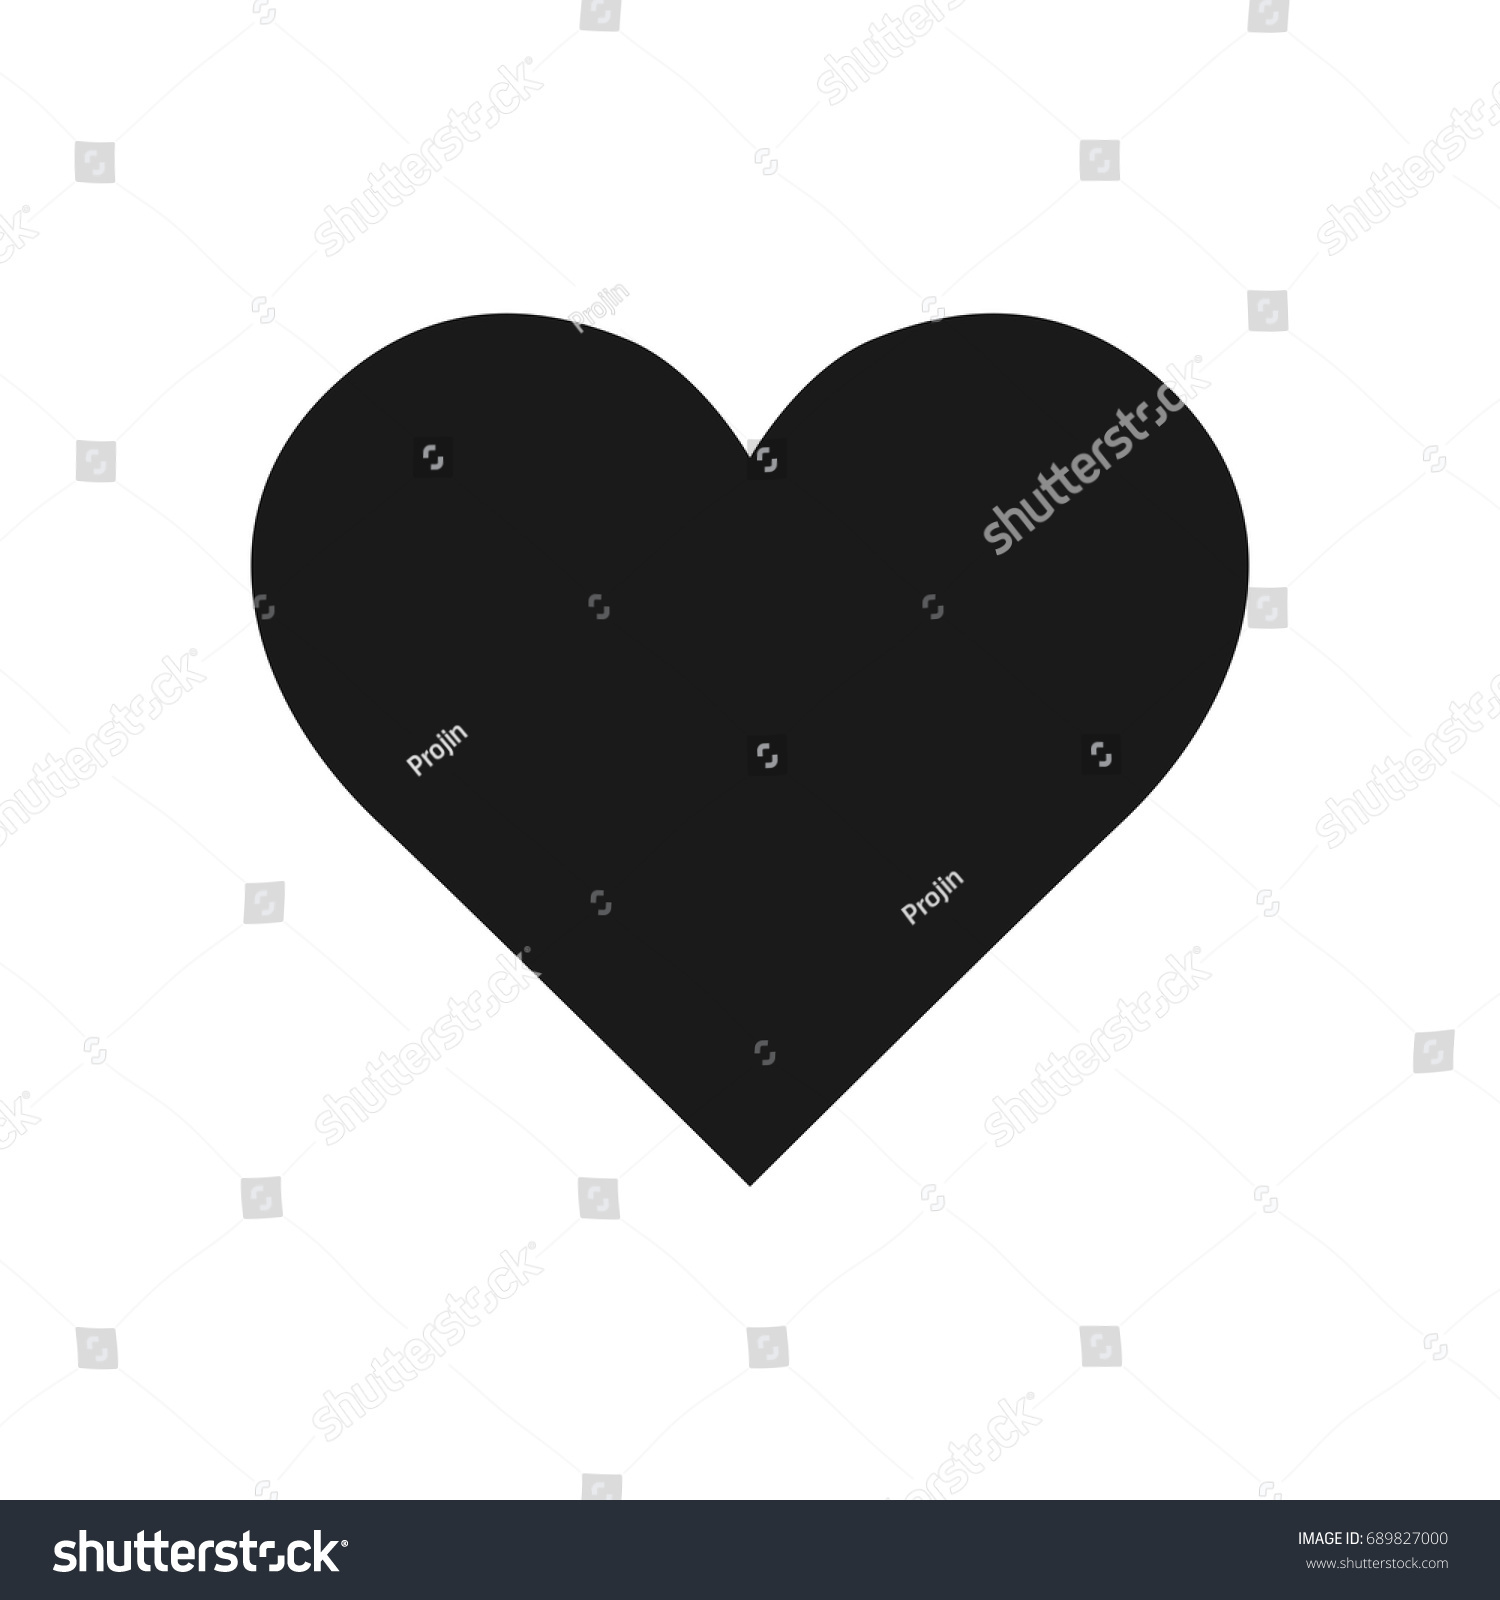 Shape symbolic heart ivy leaf black stock vector 689827000 the shape of a symbolic heart or an ivy leaf black heart icon vector biocorpaavc Gallery